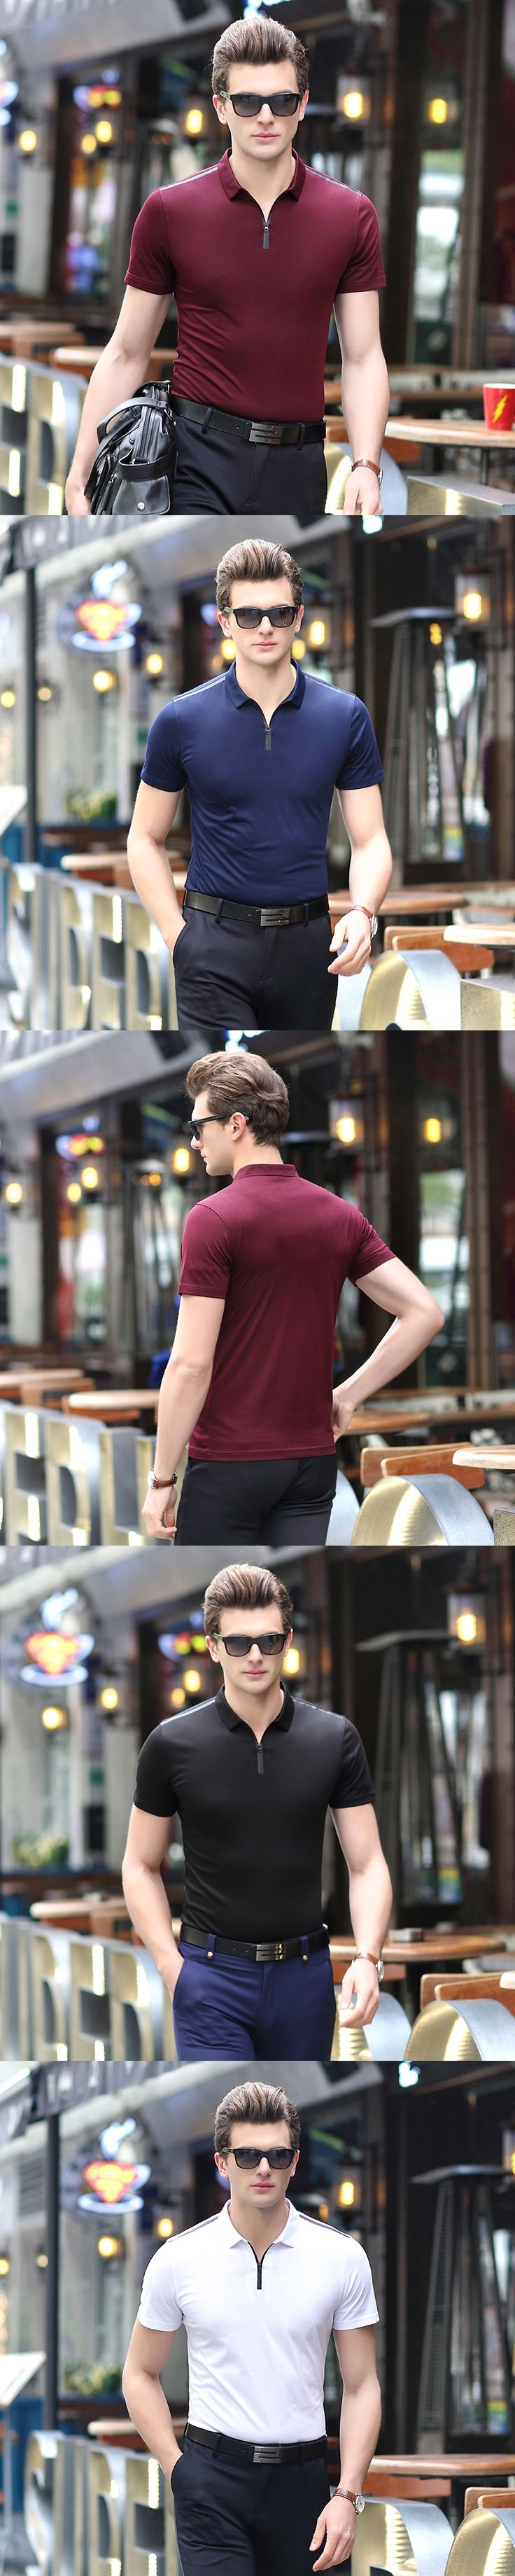 Summer Mens Fashion Polo Shirts Male Plain  Polo homme Casual Short Sleeve Tops Special Zipper Collar Polos Clothing